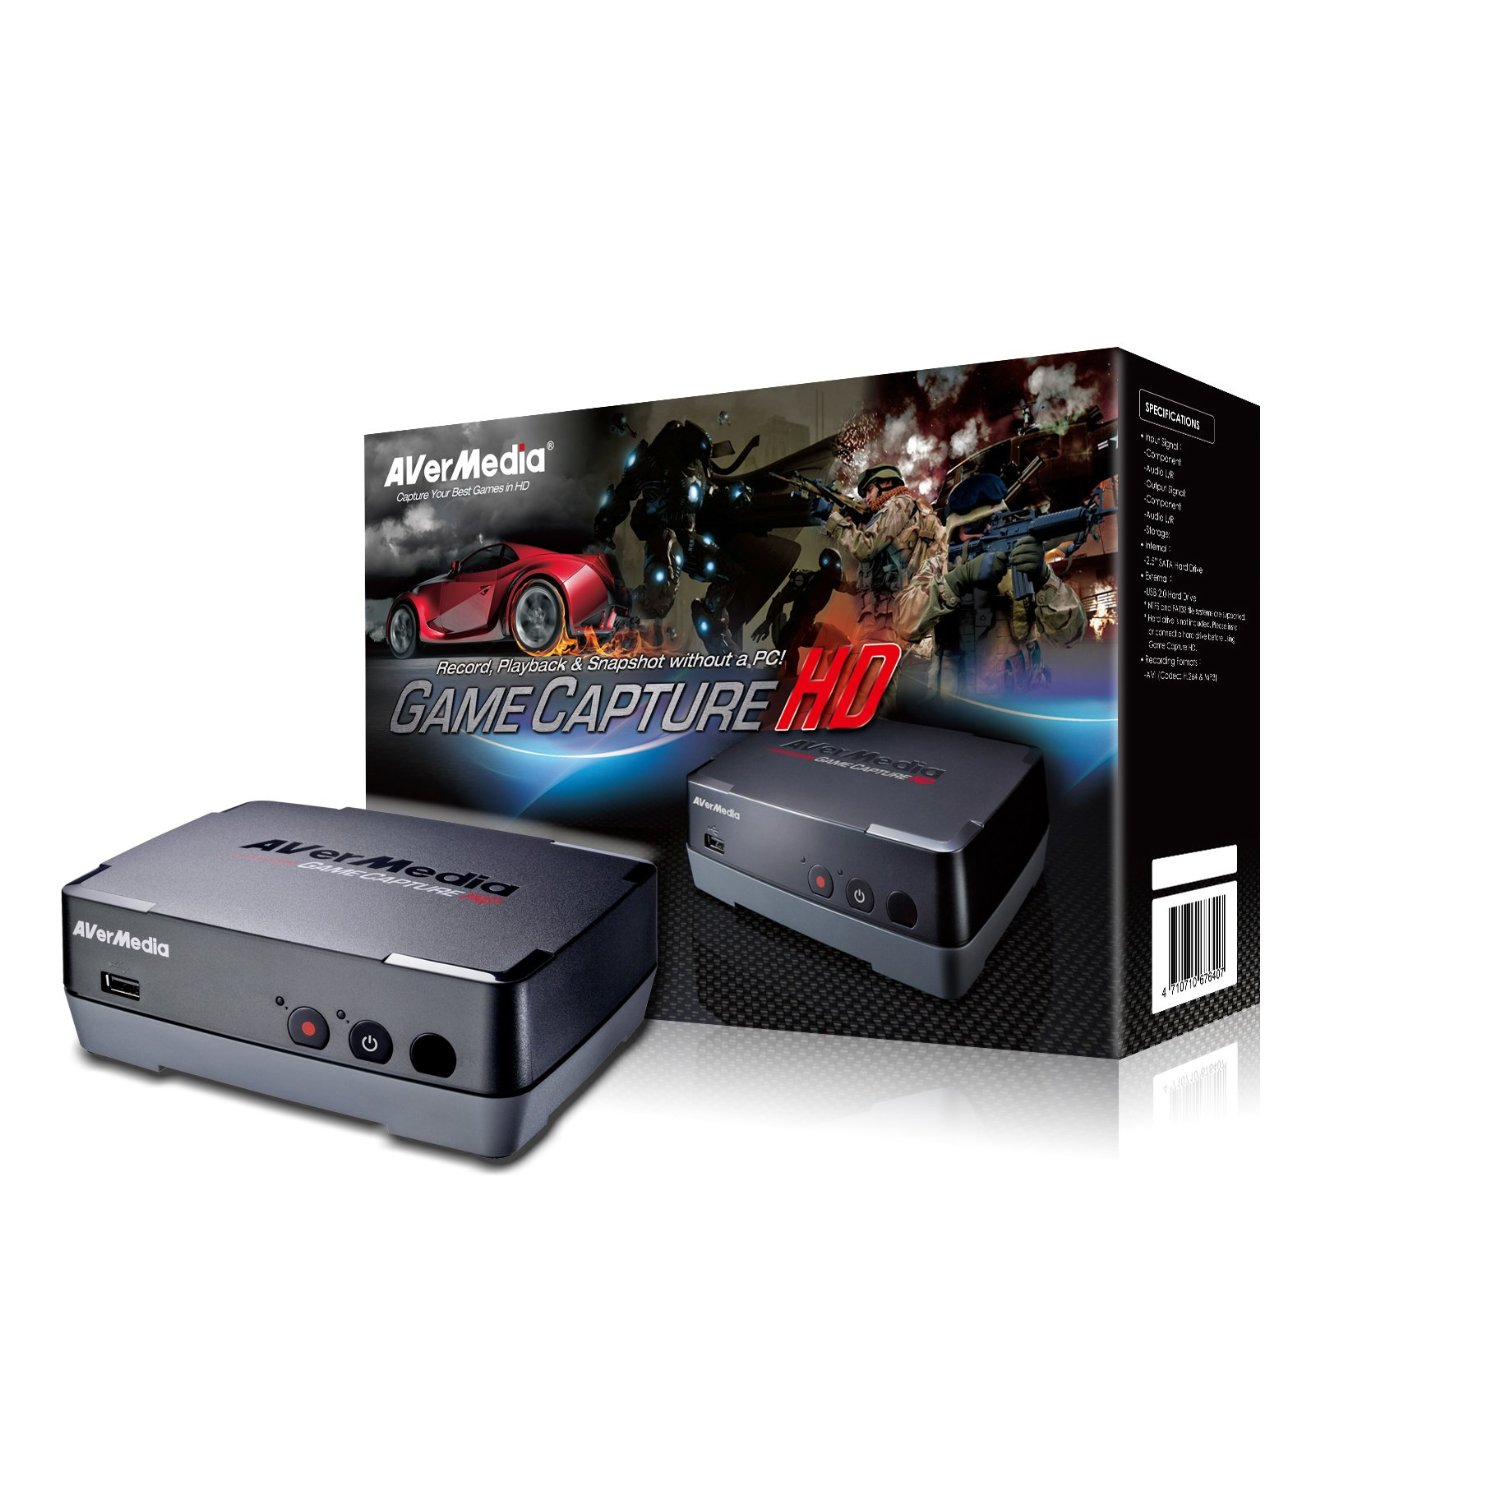 Avermedia Game Capture Hd Review The Average Gamer